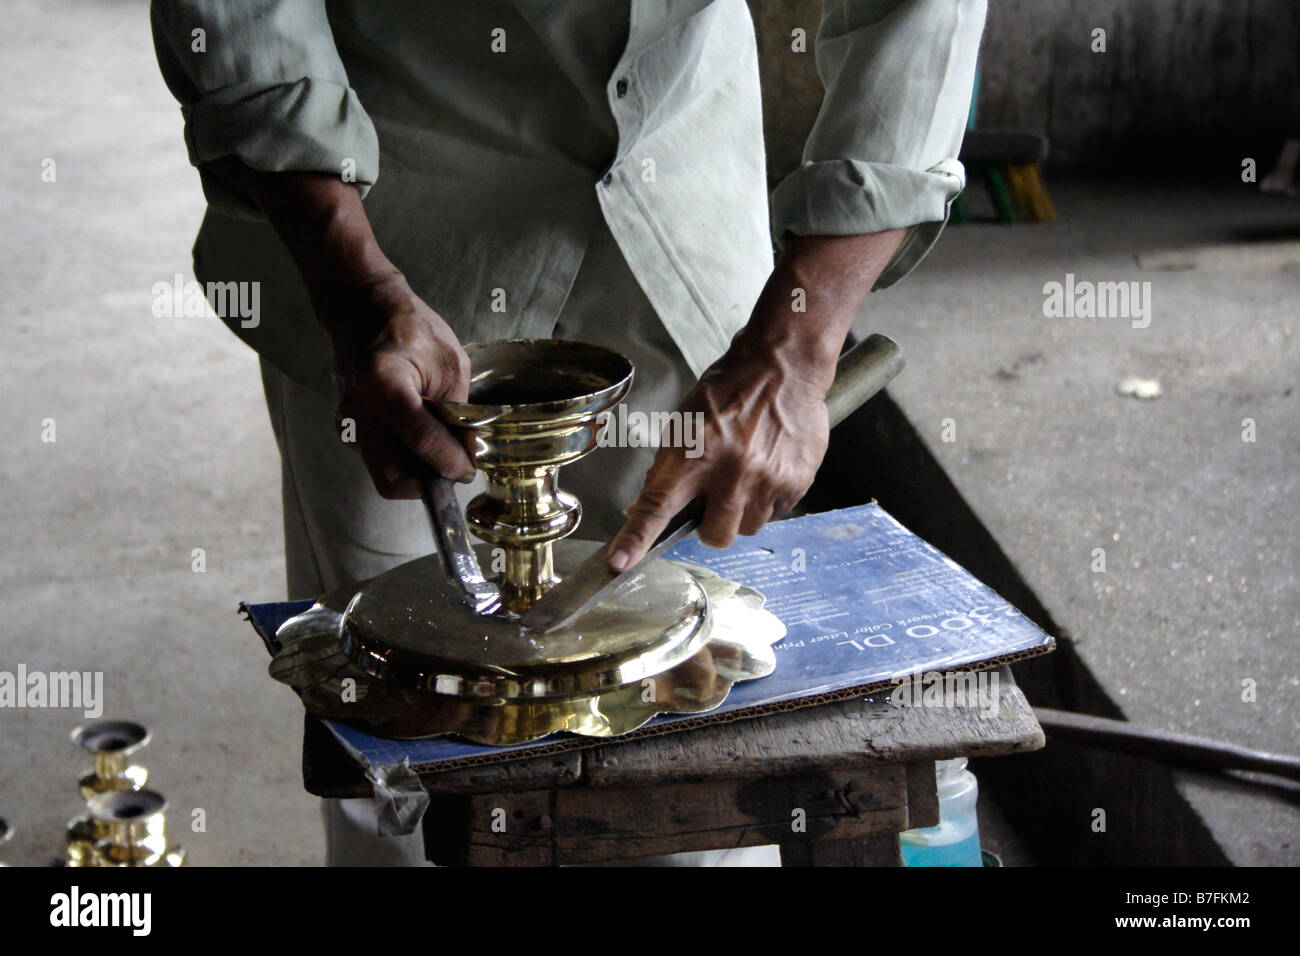 A black smith working on brassware in Terengganu, Malaysia. - Stock Image